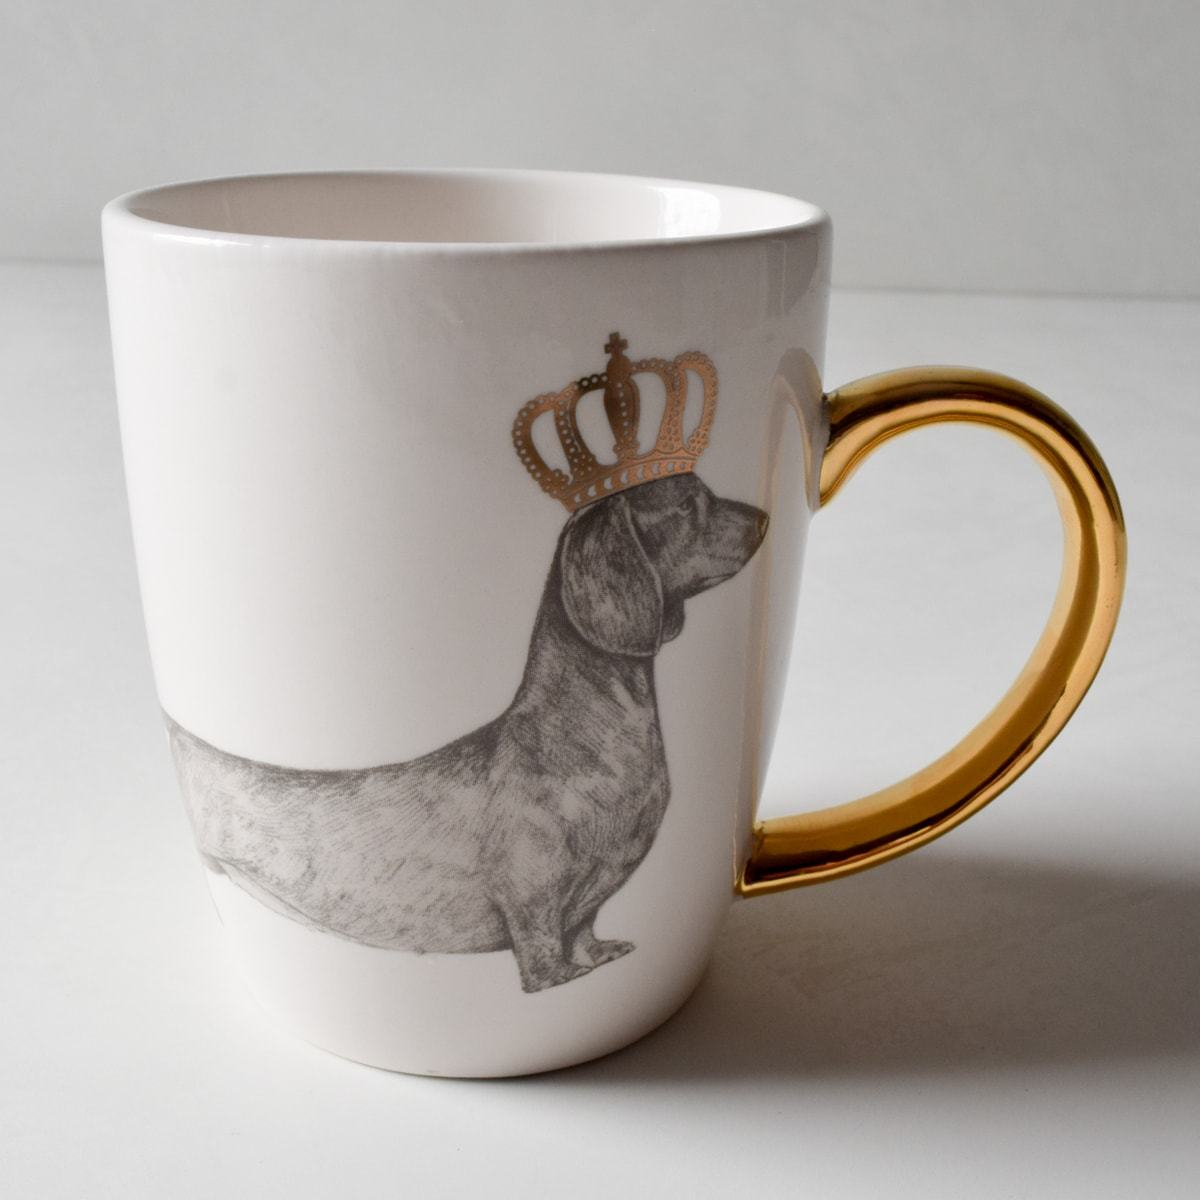 Blakely Crowned Dachshund Coffee Mug - Home Artisan